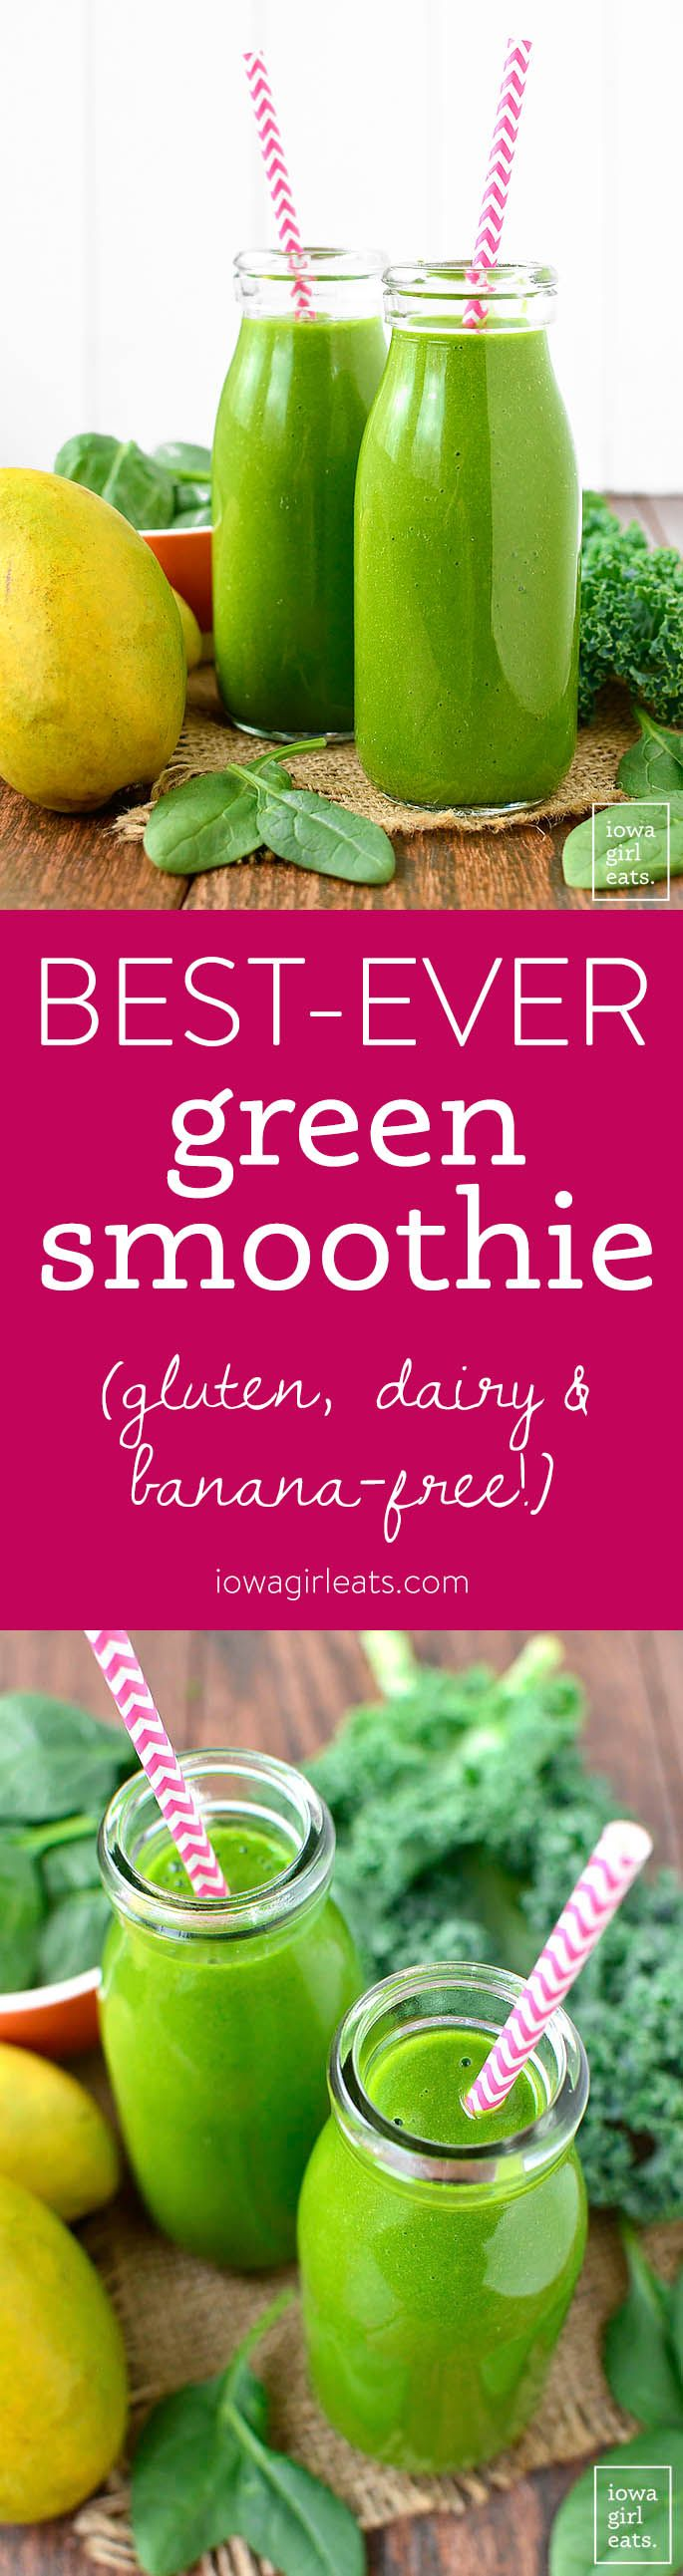 4-ingredient Best-Ever Green Smoothie isgluten, dairy, and banana-free, and is the best-tasting green smoothie EVER! If you don't want to eat your dark leafy greens – drink them instead! | iowagirleats.com